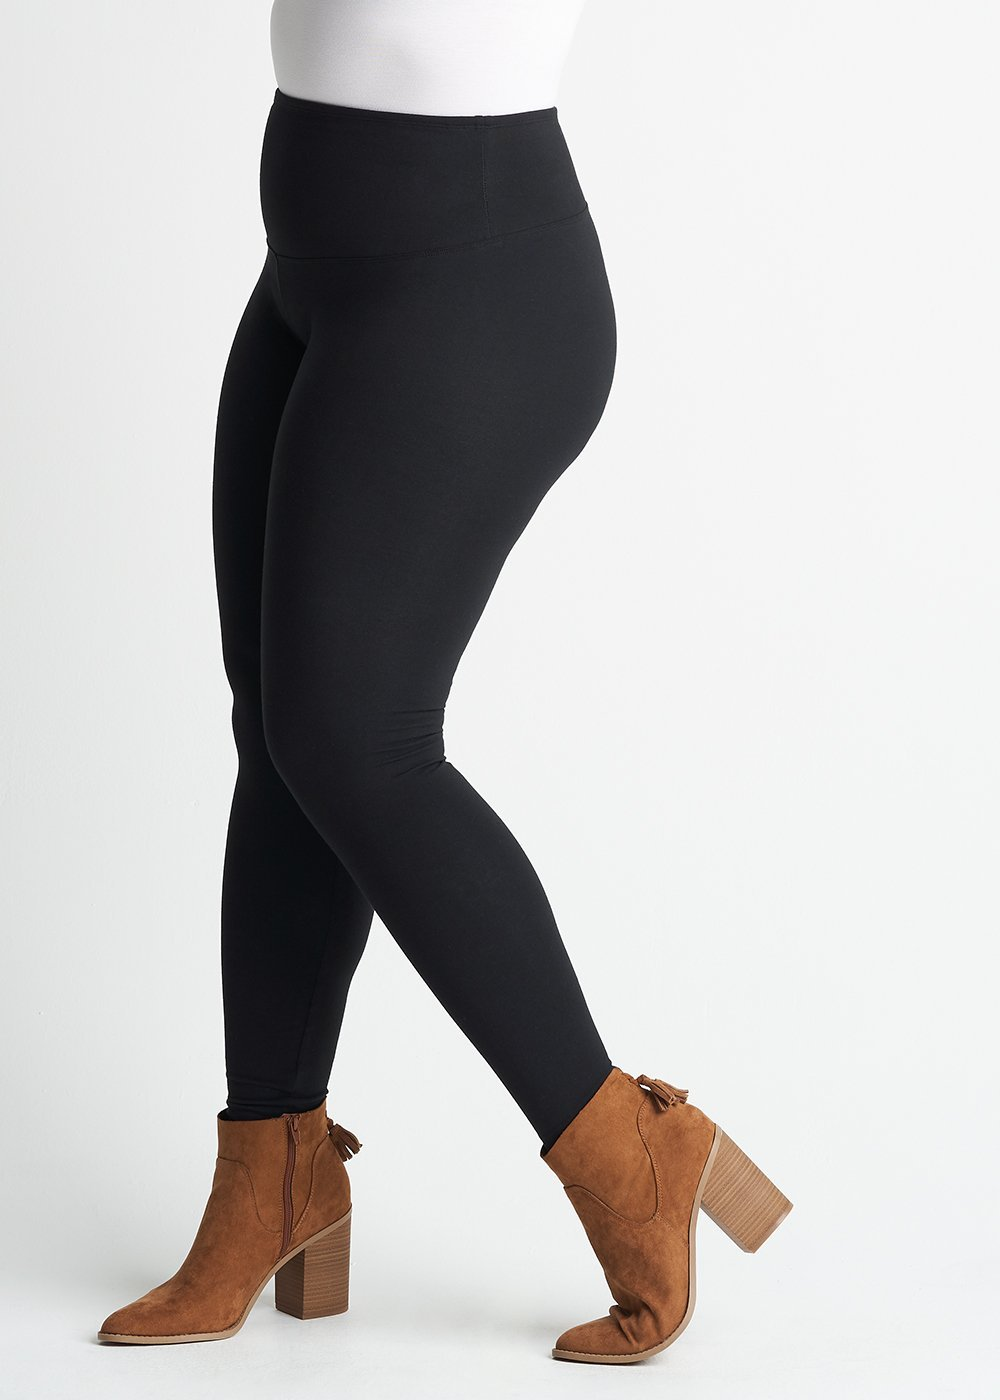 Black | 5' 9"